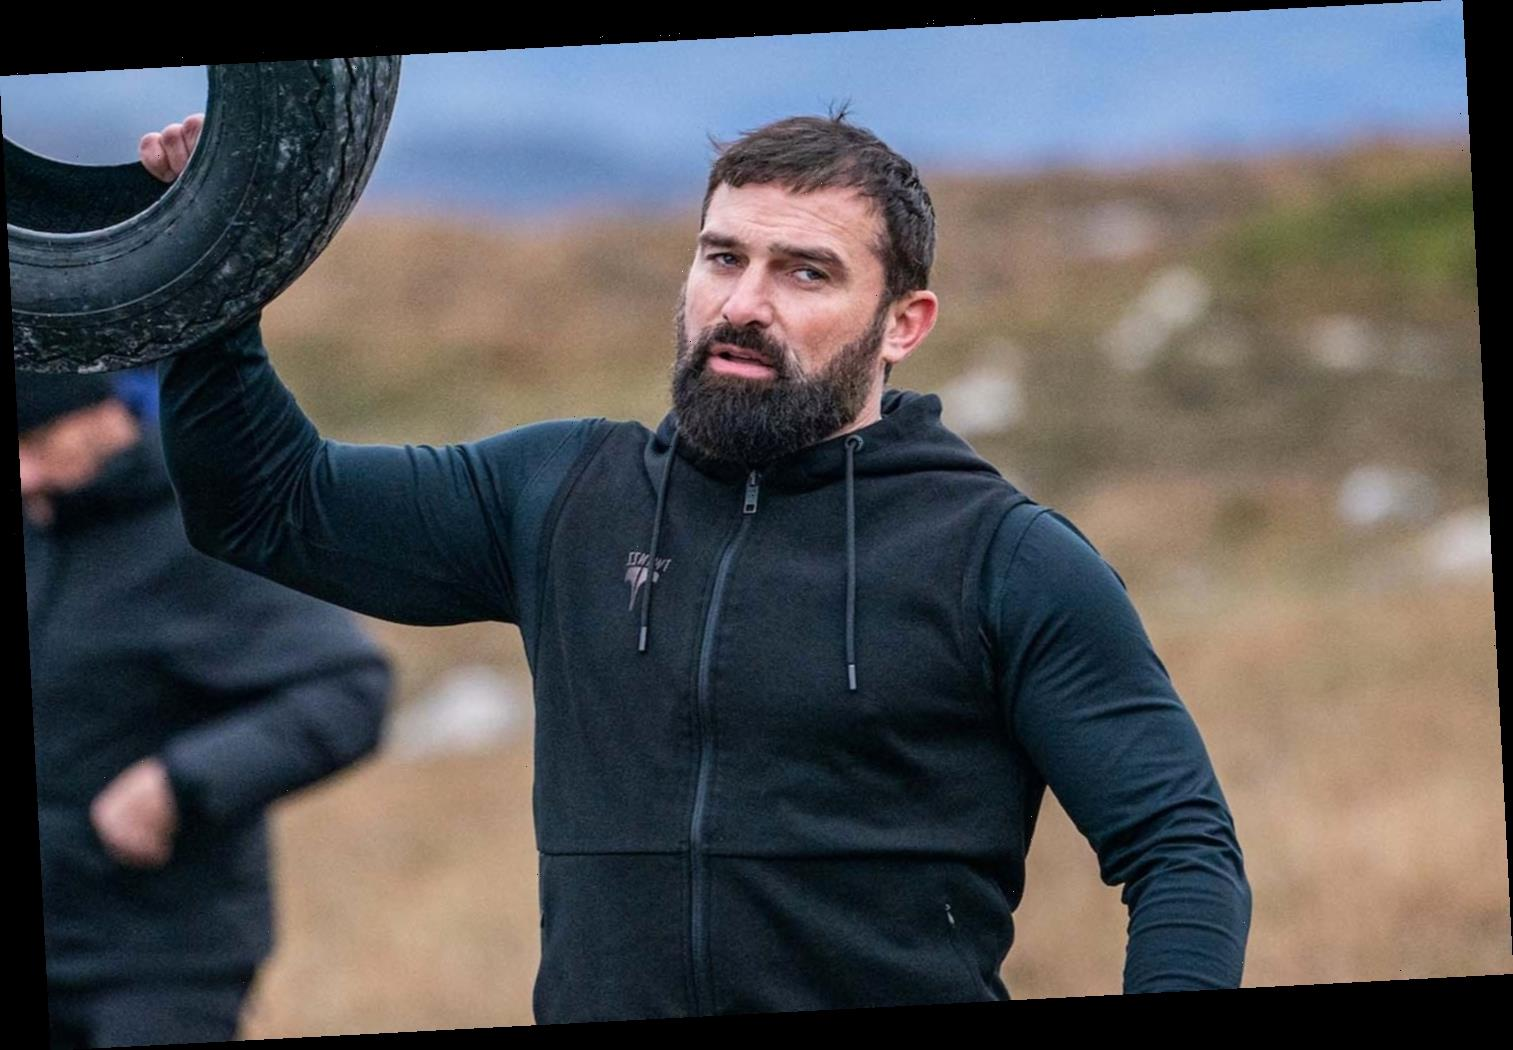 Ant Middleton axed from SAS: Who Dares Wins after clash with Channel 4 bosses who say they'll never work with him again